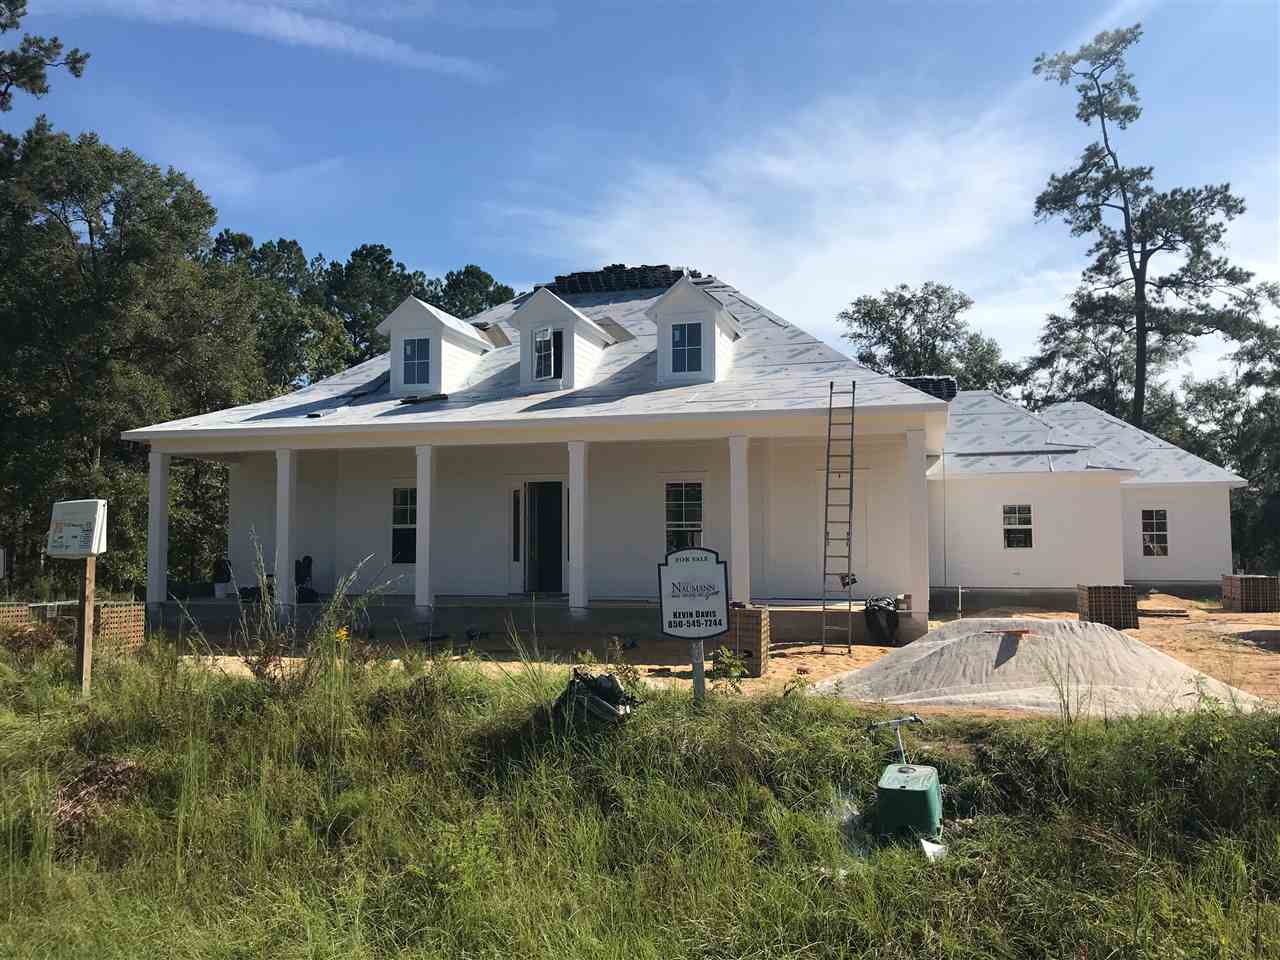 ,Homes For Sale In Tallahassee Fl  ,homes for sale in tallahassee fl 32312  ,homes for sale in tallahassee fl 32303  ,homes for sale in tallahassee fl 32311  ,homes for sale in tallahassee fl 32309  ,homes for sale in tallahassee fl 32317  ,homes for sale in tallahassee fl 32308  ,homes for sale in tallahassee florida with a pool  ,homes for sale in tallahassee fl with mother in law suites  ,homes for sale in tallahassee fl with pool  ,homes for sale in tallahassee florida 32303  ,homes for sale in tallahassee fl 32301  ,homes for sale in tallahassee fl near fsu  ,homes for sale in tallahassee fl 32304  ,homes for sale in tallahassee fl 32310  ,homes for sale in tallahassee florida 32312  ,homes for sale in tallahassee fl southwood  ,homes for sale in tallahassee fl by owner  ,homes for sale in tallahassee fl 32305  ,homes for rent in tallahassee fl  ,homes for rent in tallahassee fl 32303  ,mobile homes for sale in tallahassee florida area  ,mobile homes for rent in tallahassee fl area  ,homes for sale in avondale tallahassee fl  ,homes for sale in indian head acres tallahassee fl  ,homes for sale in killearn acres tallahassee fl  ,homes and land for sale in tallahassee fl  ,homes for sale in arbor hills tallahassee fl  ,homes for sale in emerald acres tallahassee fl  ,homes for sale in arvah branch tallahassee fl  ,homes for sale around tallahassee fl  ,homes for sale around tallahassee florida  ,homes for sale in buck lake area tallahassee fl  ,homes for sale in town and country tallahassee fl  ,homes for sale park ave tallahassee fl  ,homes for rent in killearn acres tallahassee fl  ,homes for rent around tallahassee fl  ,craigslist apt/housing for rent in tallahassee fl  ,homes for rent in tallahassee fl by owner  ,homes for sale in buckwood tallahassee fl  ,brick homes for sale in tallahassee fl  ,homes for sale in buckhead tallahassee fl  ,homes for sale in betton hills tallahassee fl  ,2 bedroom homes for sale in tallahassee fl  ,homes for sale in buck lake 